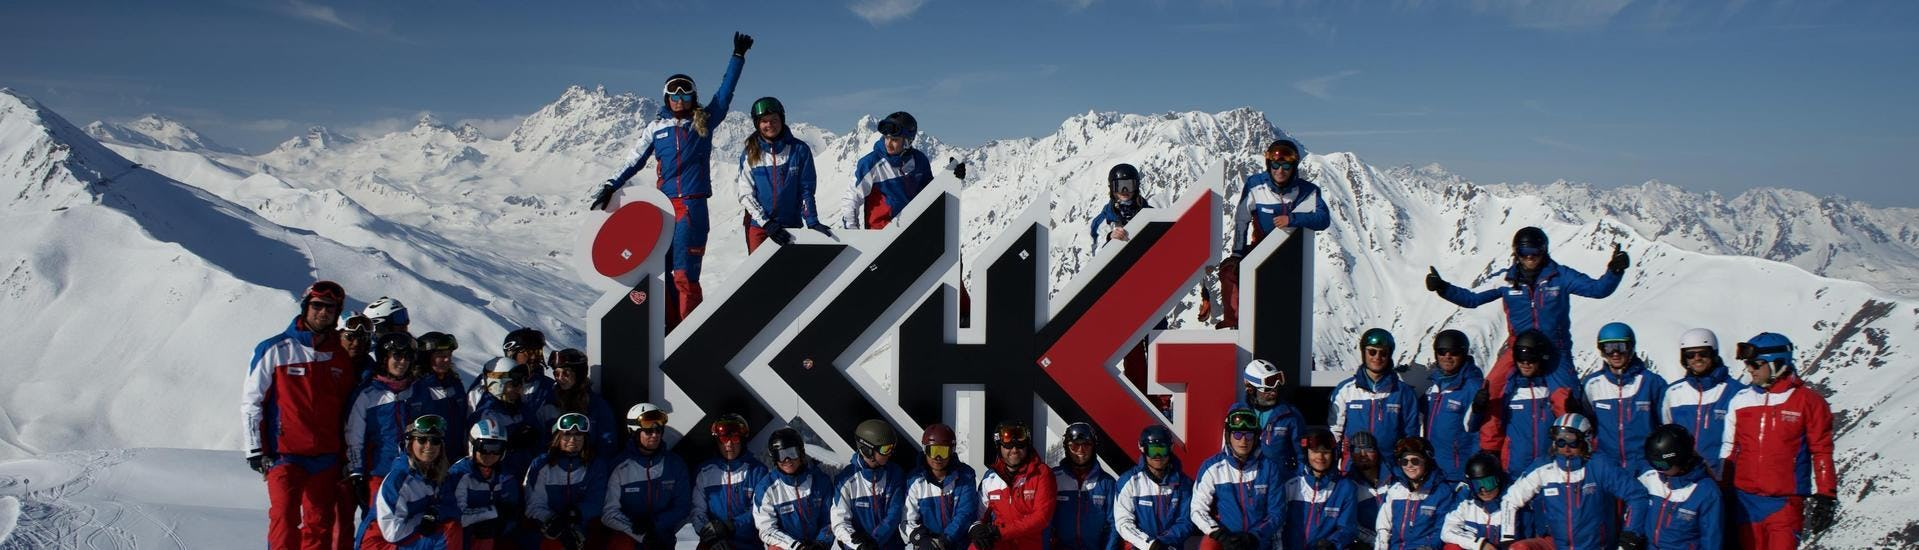 The ski instructors from Skischule Ischgl Schneesport Akademie are gathered around the logo of the ski school and are seemingly looking forward to teaching their ski lessons.